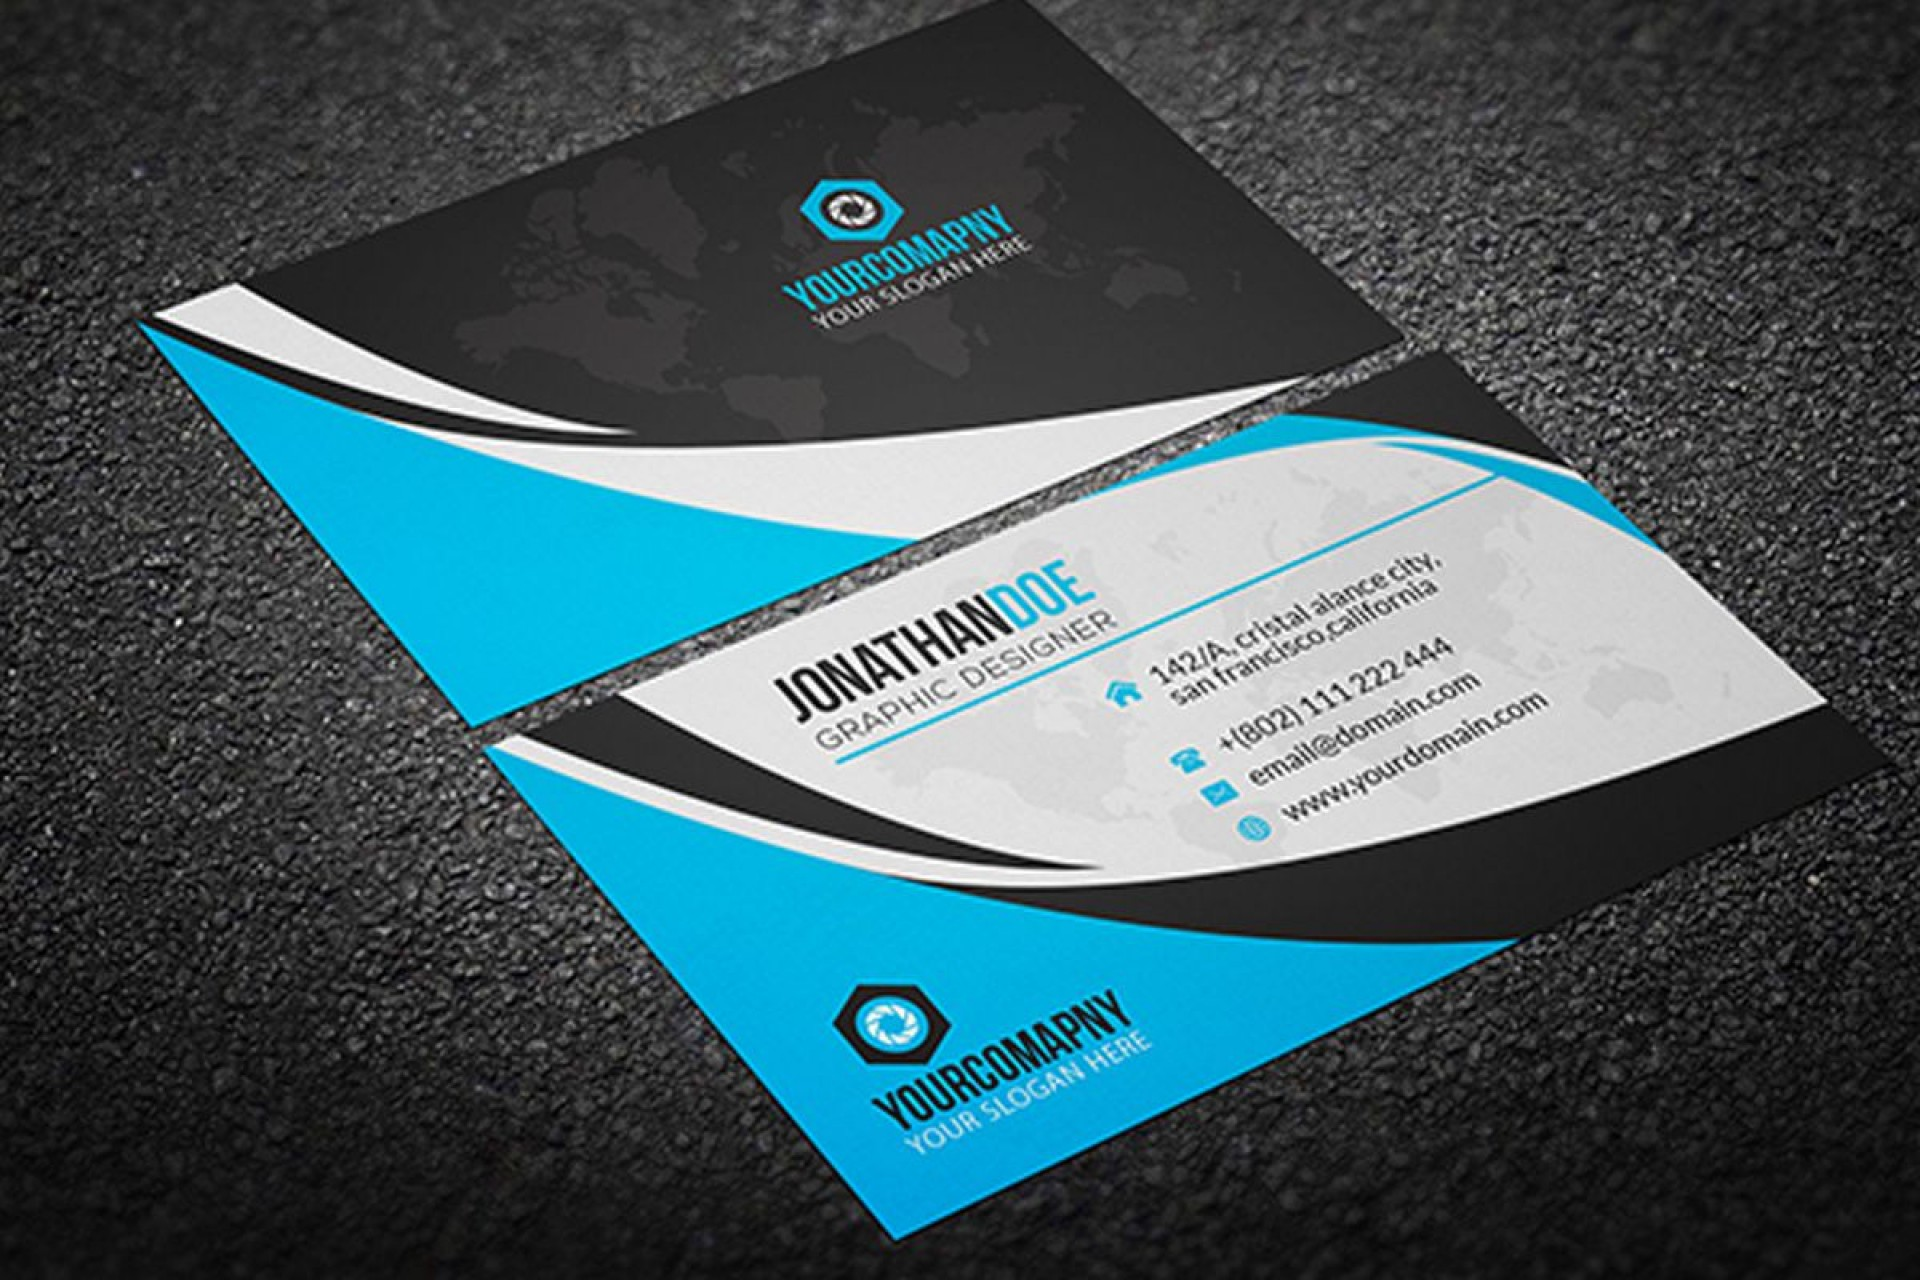 002 Fearsome Psd Busines Card Template Design  With Bleed And Crop Mark Vistaprint Free1920